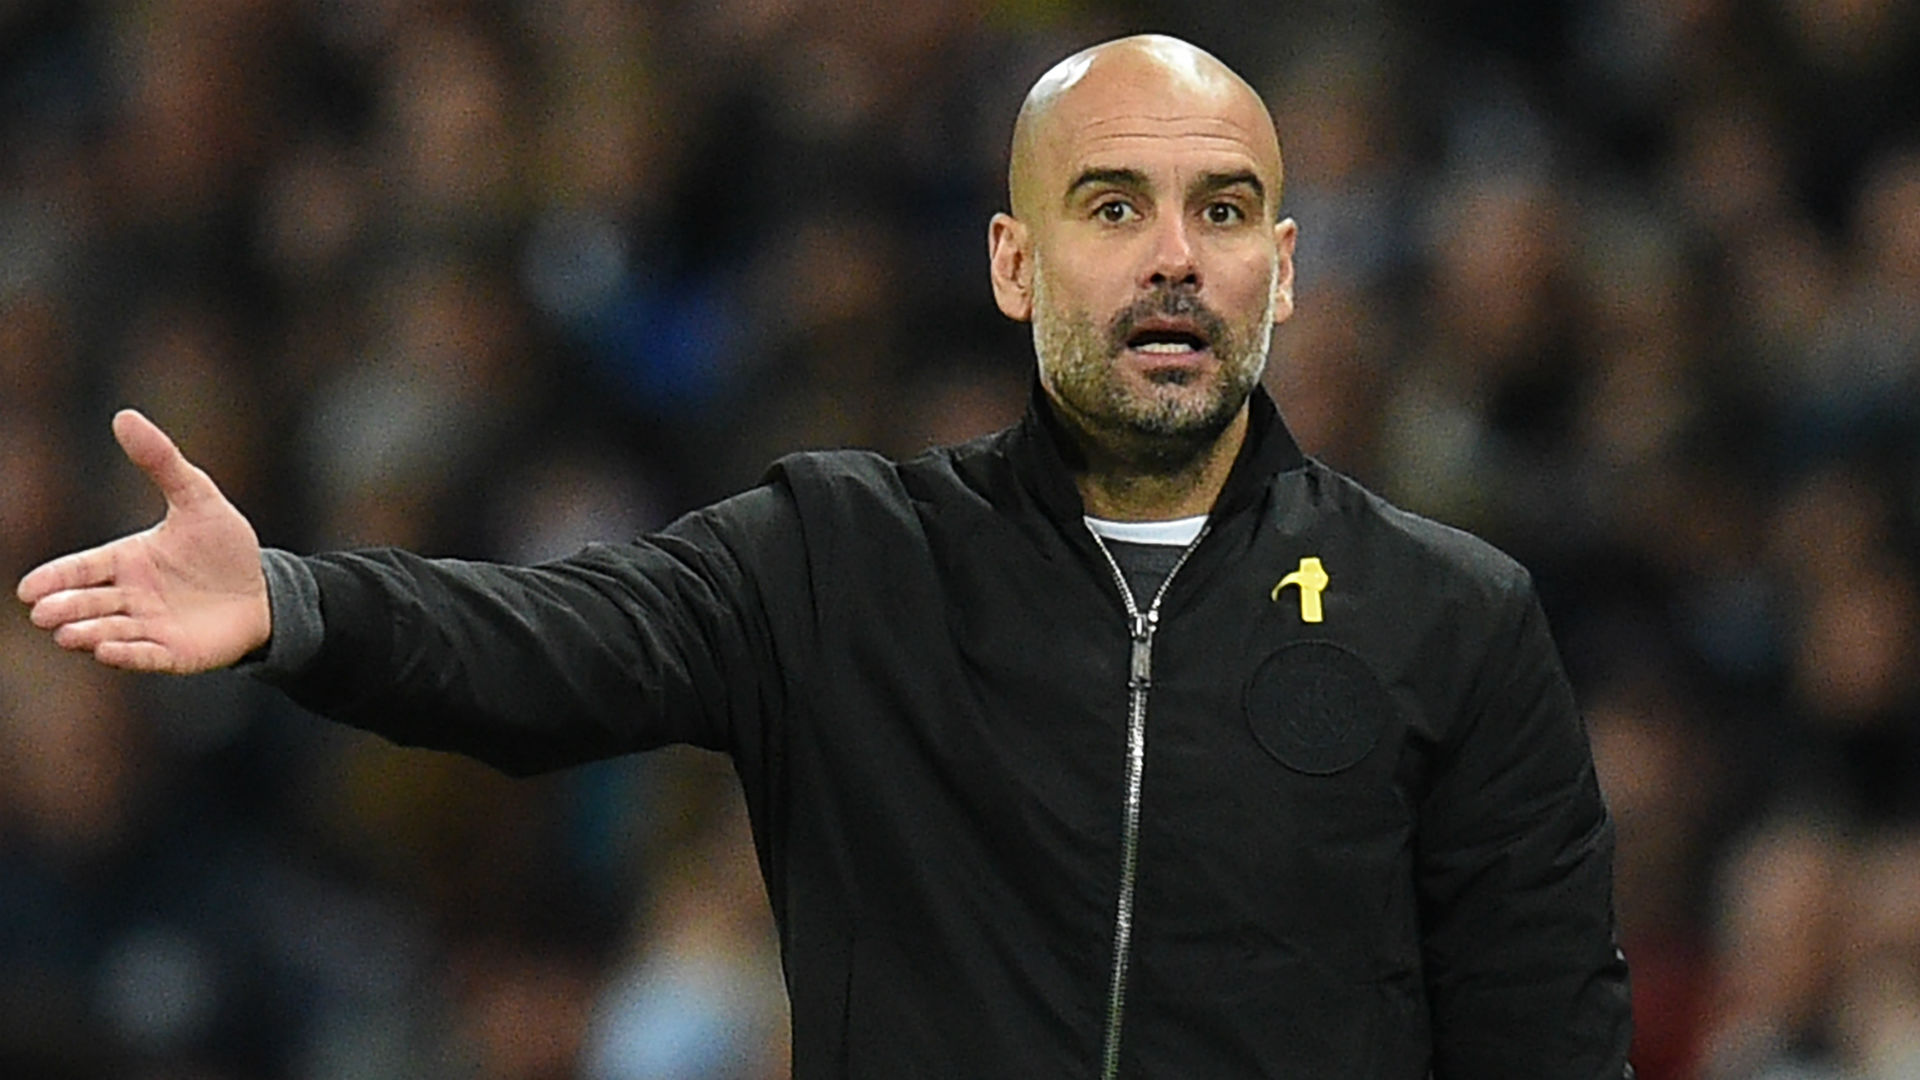 Guardiola led his Man City side to the quarter finals of the Champions League (Agency Photo)